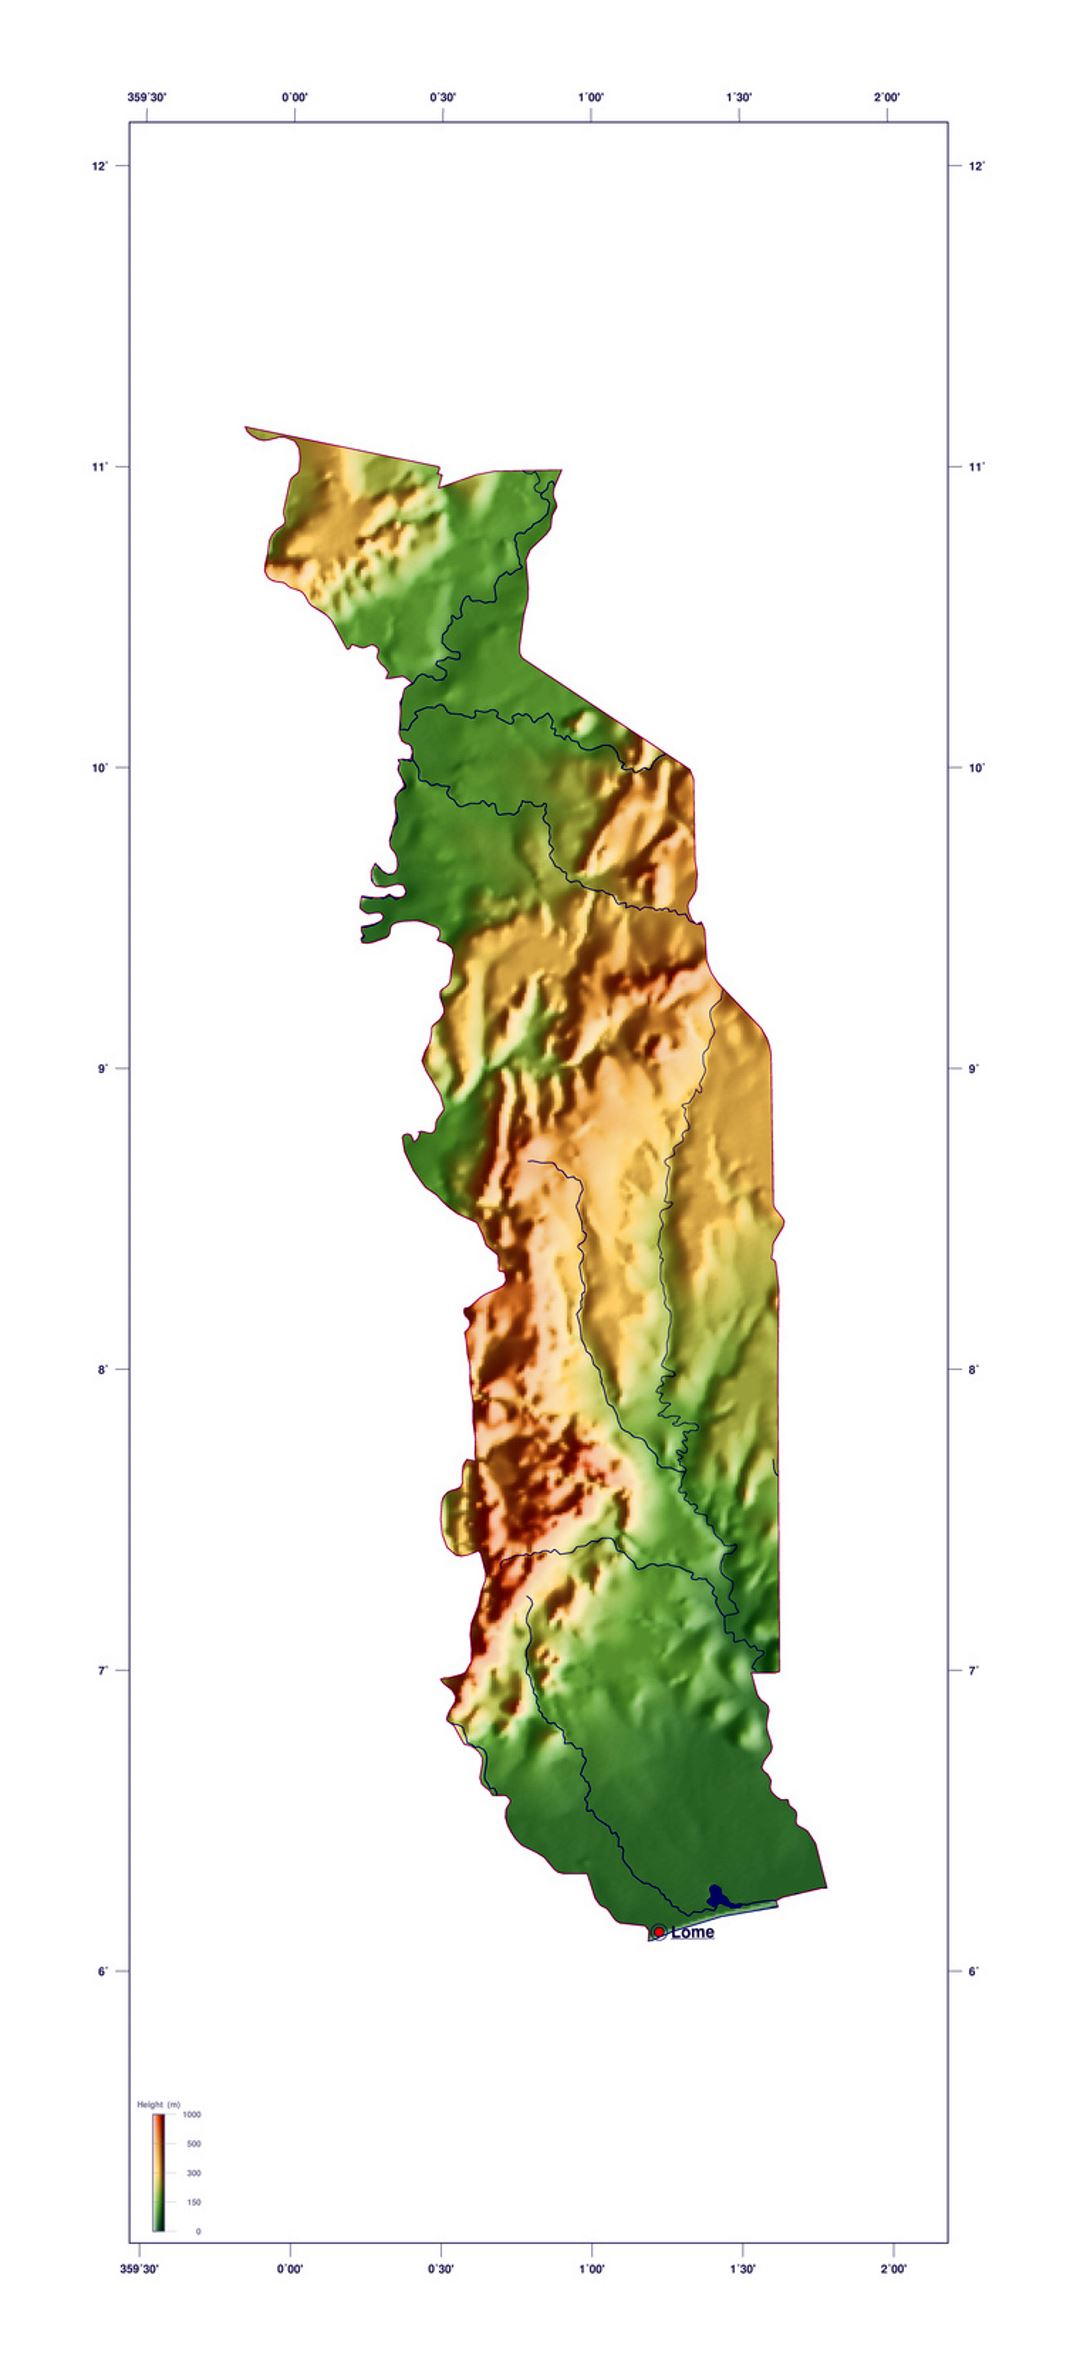 Large elevation map of Togo